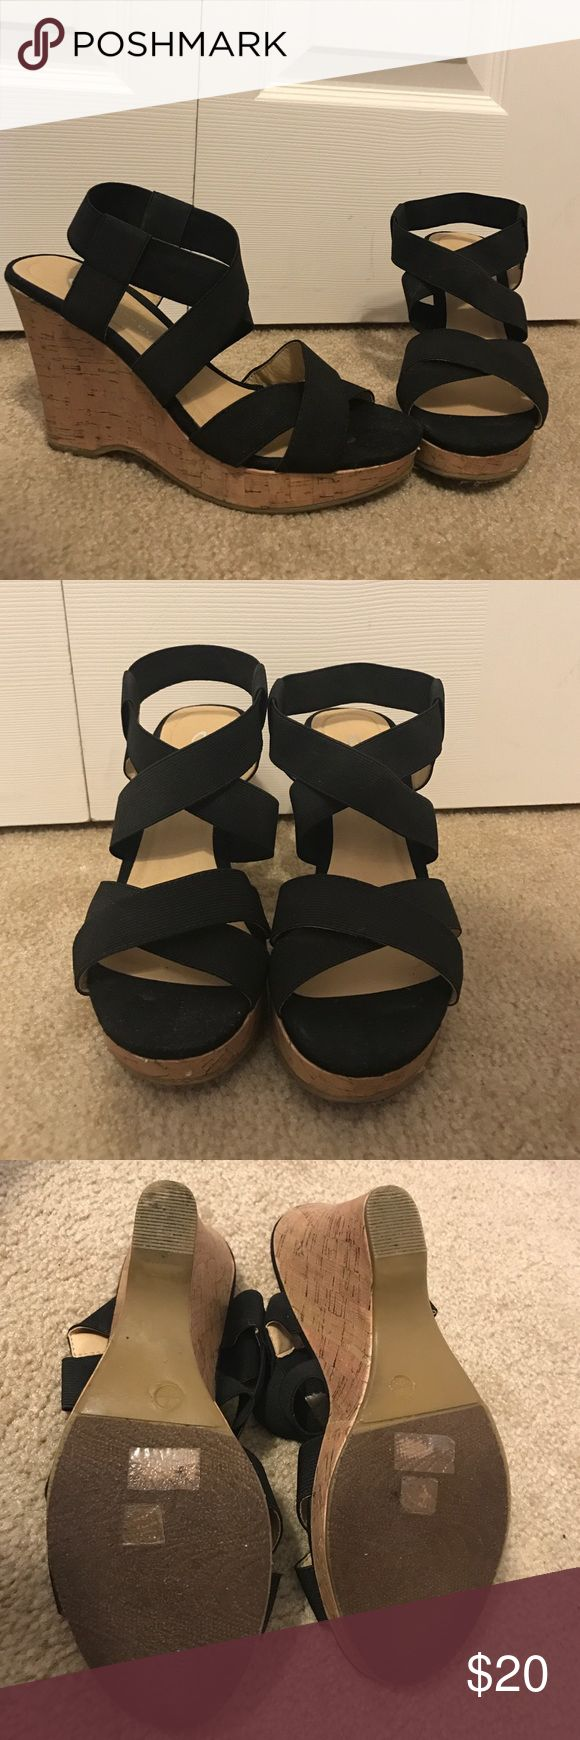 👠Shoes- Wedges Tan and black wedges. Perfect for every outfit. Black straps are stretchy material so they are very comfortable. Worn only a few times (unfortunately just a 1/2 size too big for me). Brand: CL by Laundry Design ✅Great deal!✅ Save with bundle discounts💰 I also offer customized bundles🛍  Interested? Leave a comment below 👇🏼 ~~~~~~~~~~~~~~~~~~~~~~~~~~~~~~ Steve Madden Shoes Wedges